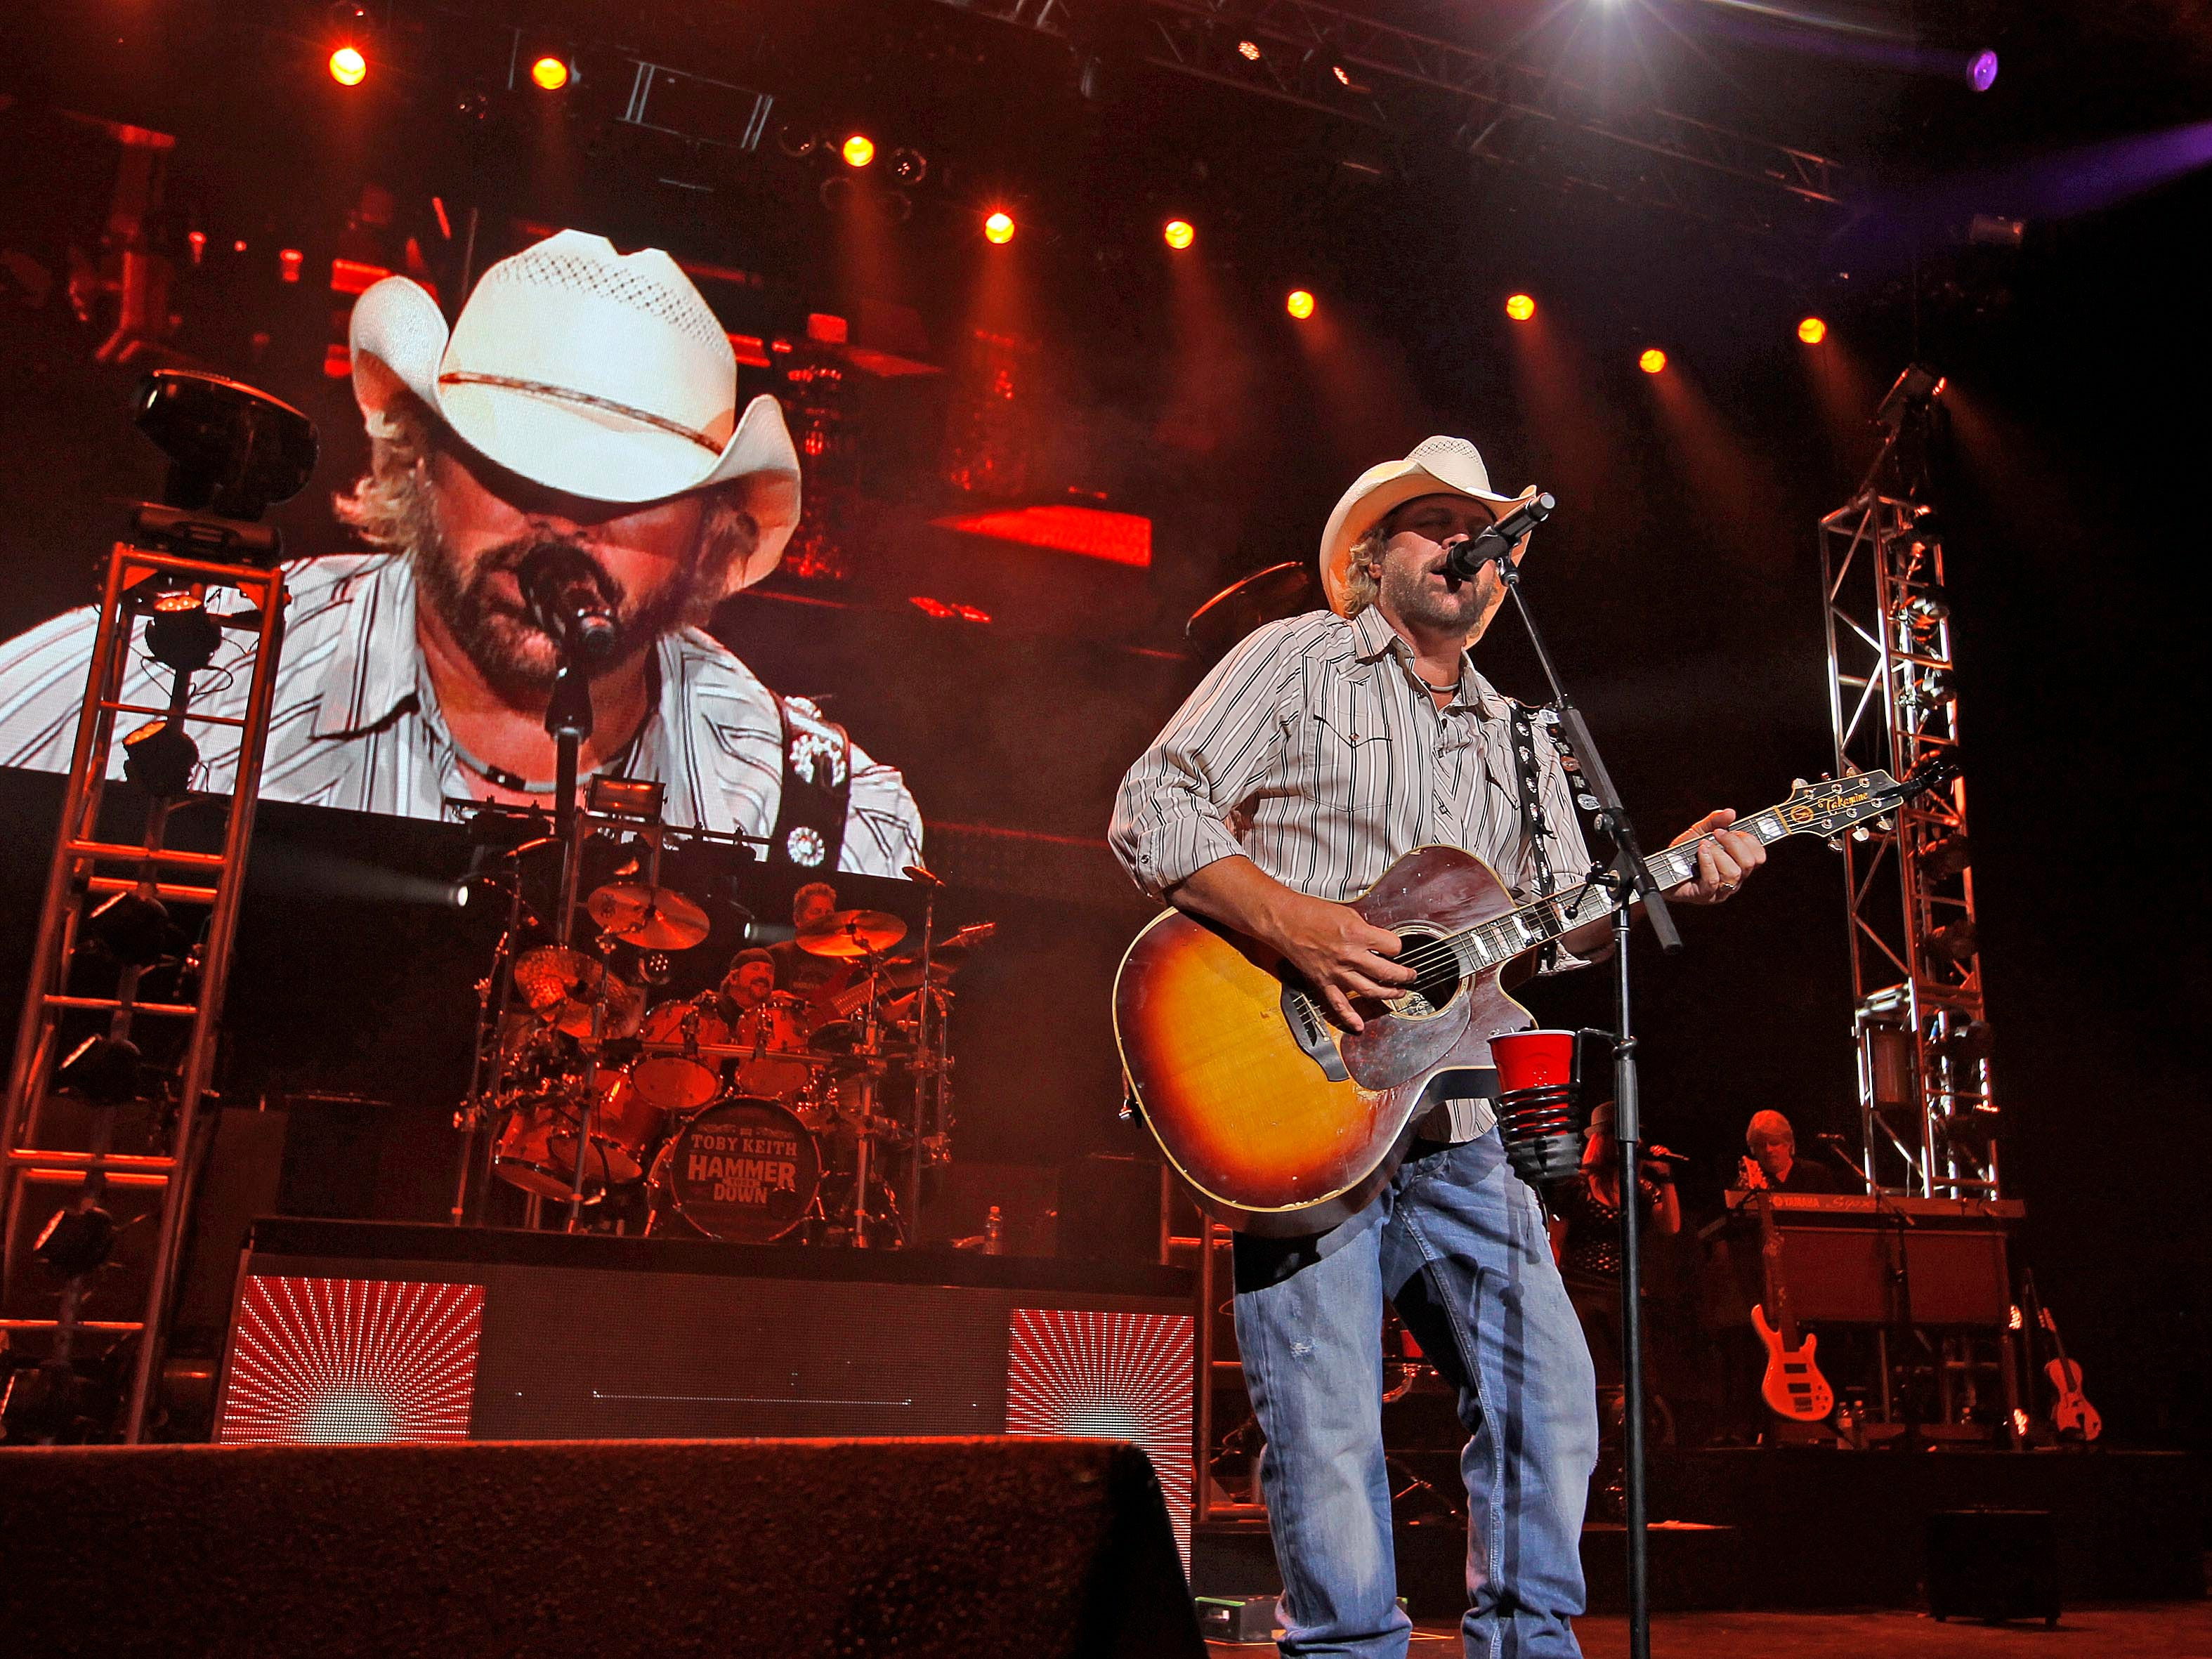 2013: Toby Keith performs for the Harley-Davidson faithful at the opening night of Harley's 110th anniversary celebration at Summerfest's Marcus Amphitheater on Aug. 29, 2103.